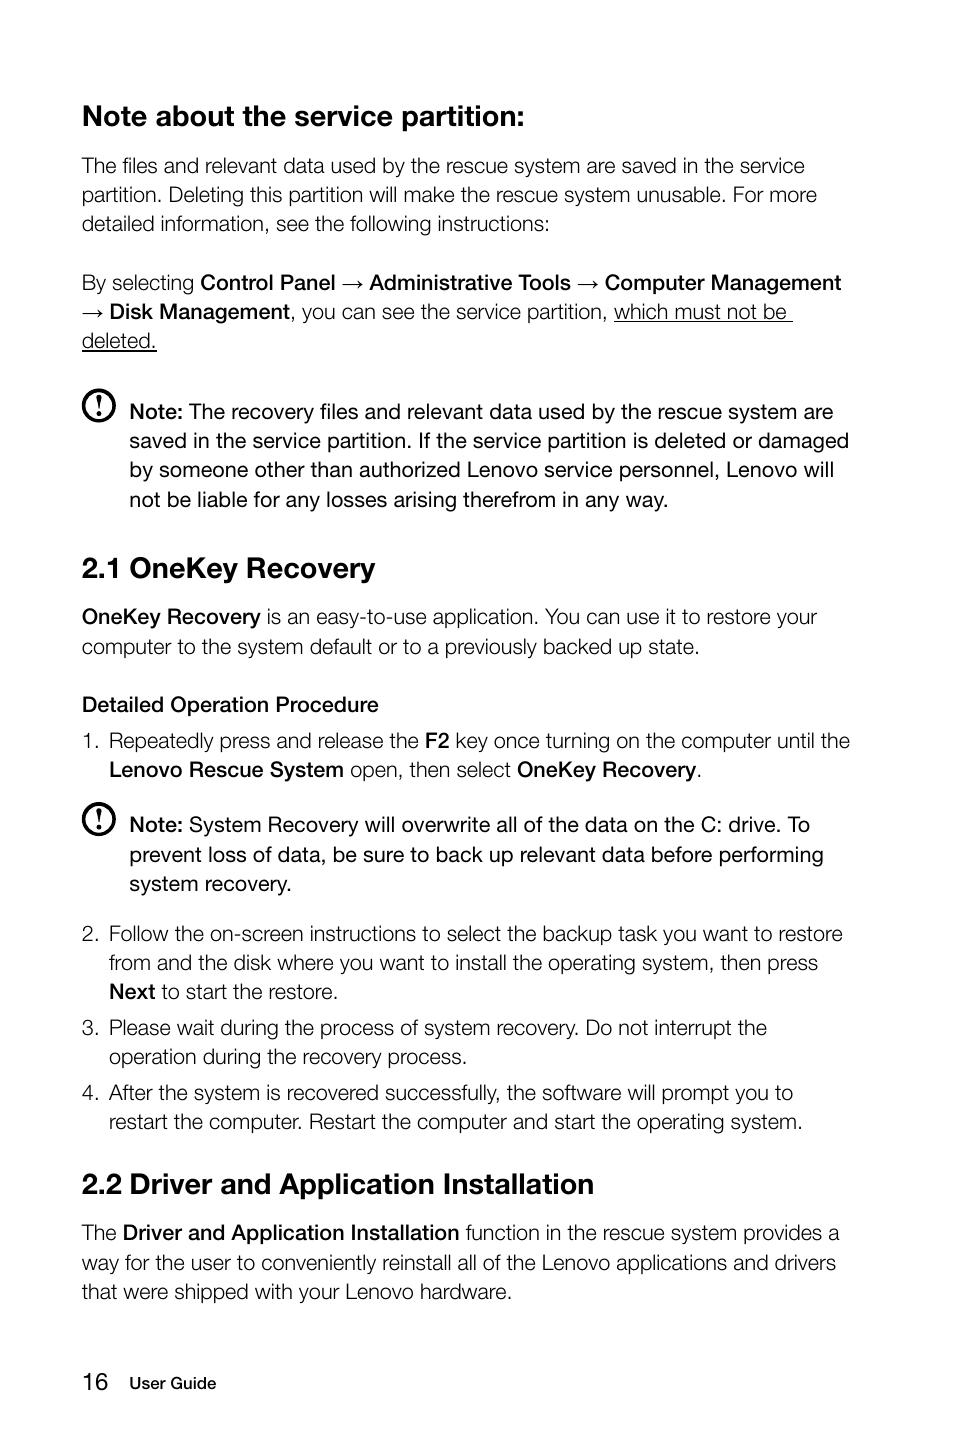 1 onekey recovery, 2 driver and application installation